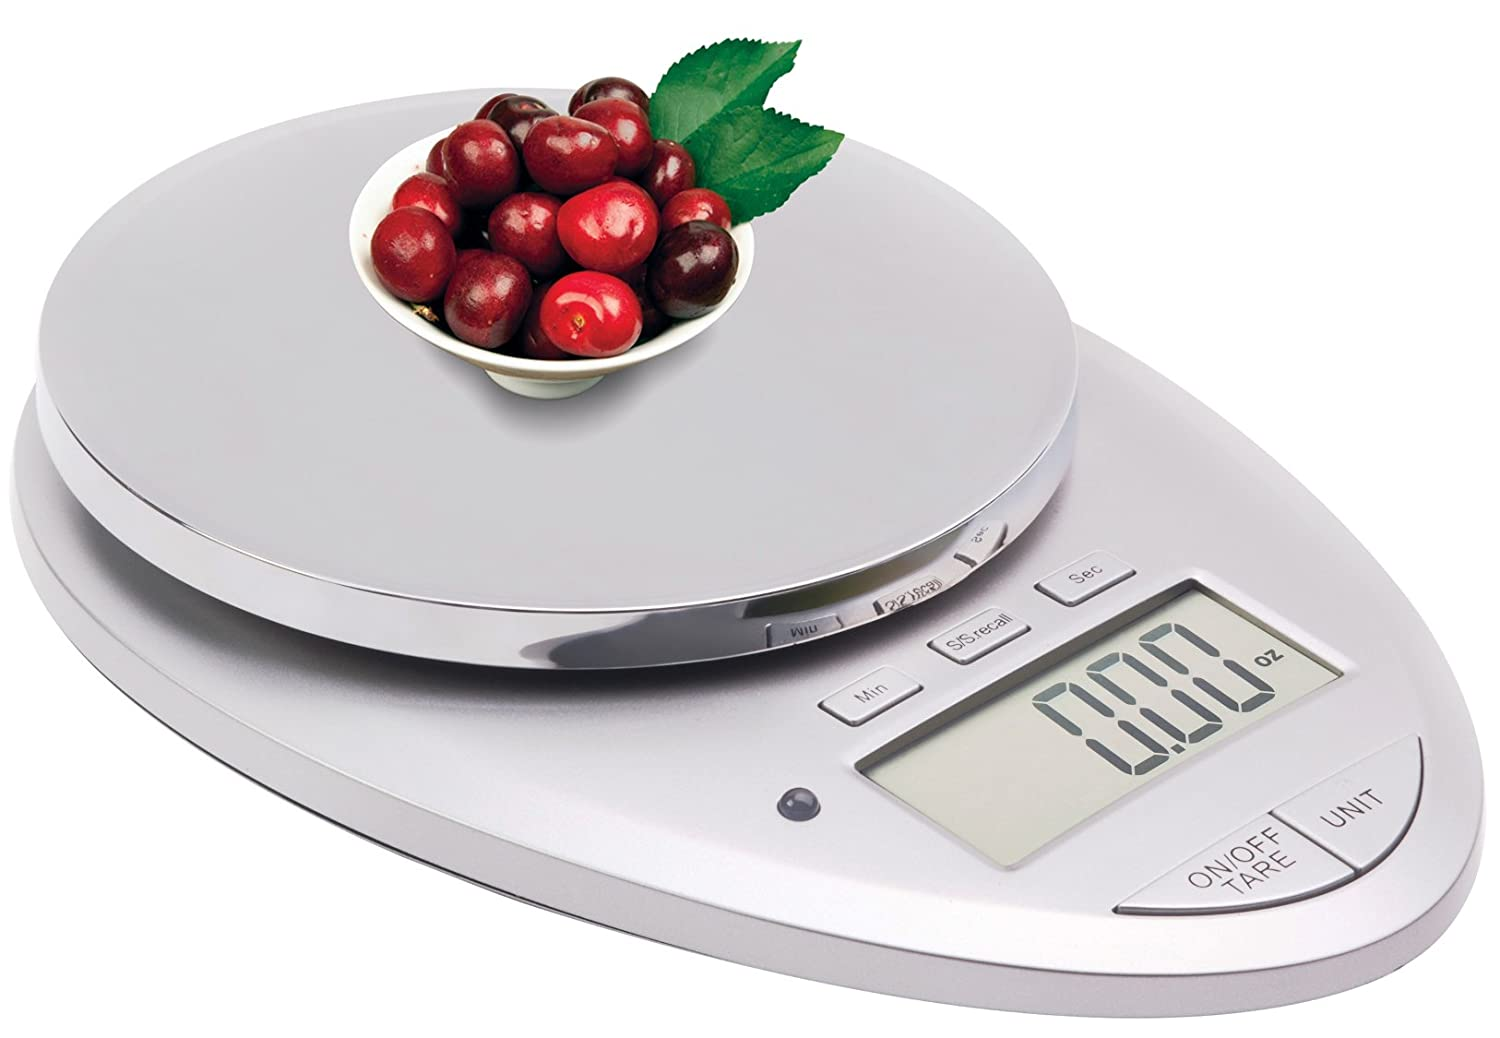 Ozeri Pro II Digital Kitchen Scale in Elegant Chrome, 1g to 12 lbs Capacity, with Countdown Kitchen Timer $19.95